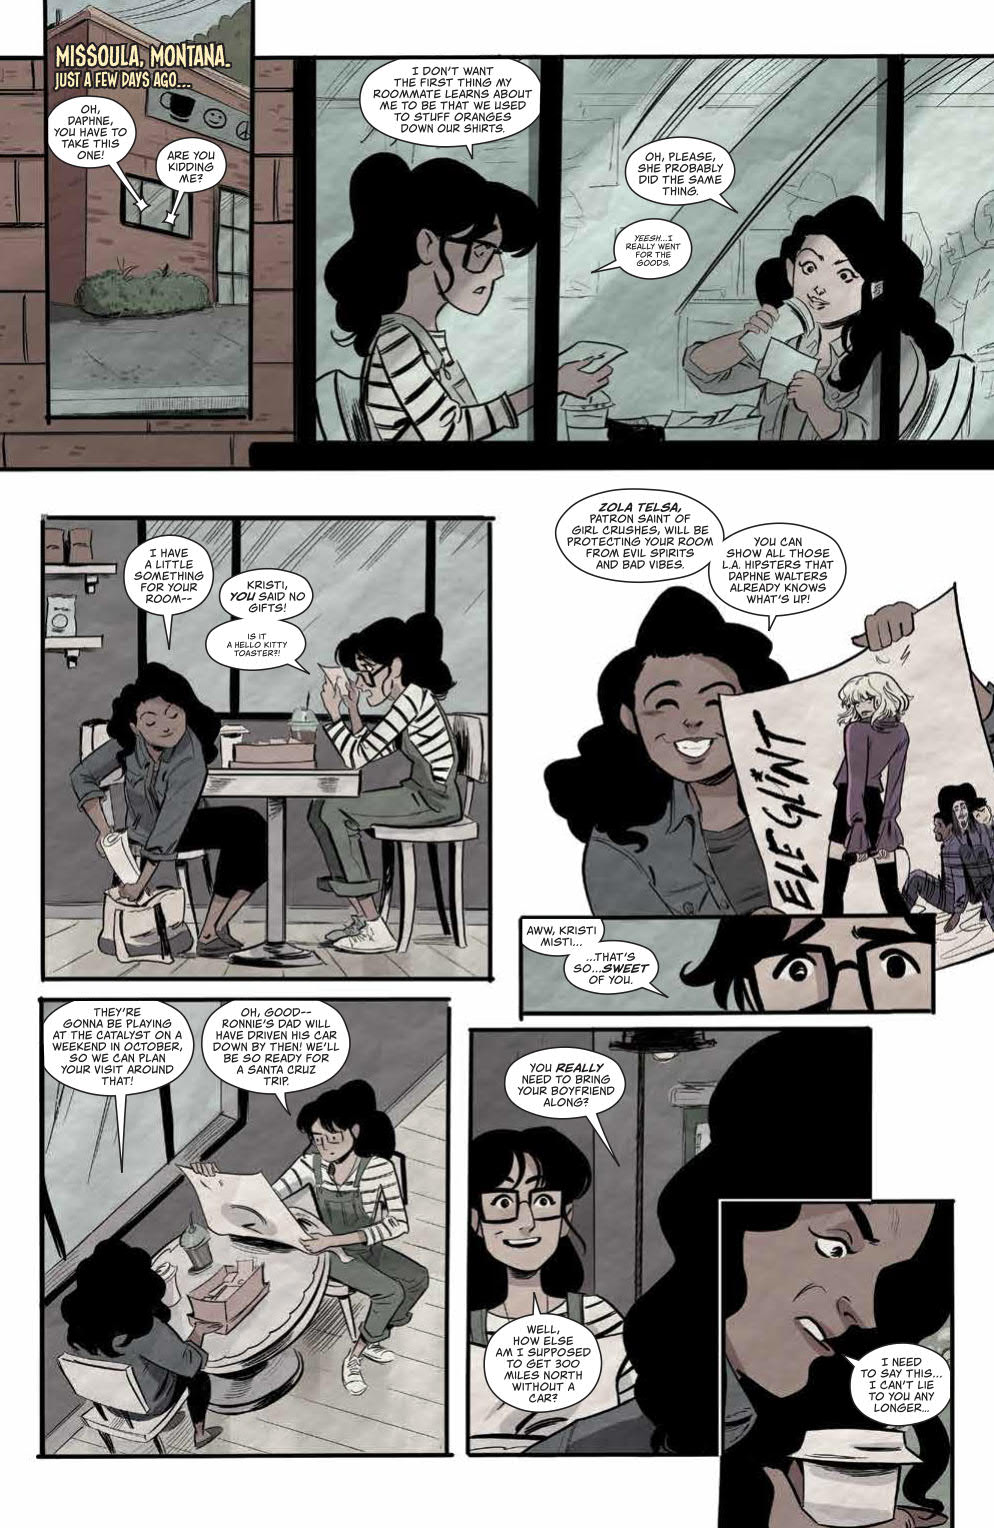 Ghosted In LA #1: Page 1, Kristi and Daphne In a Flashback